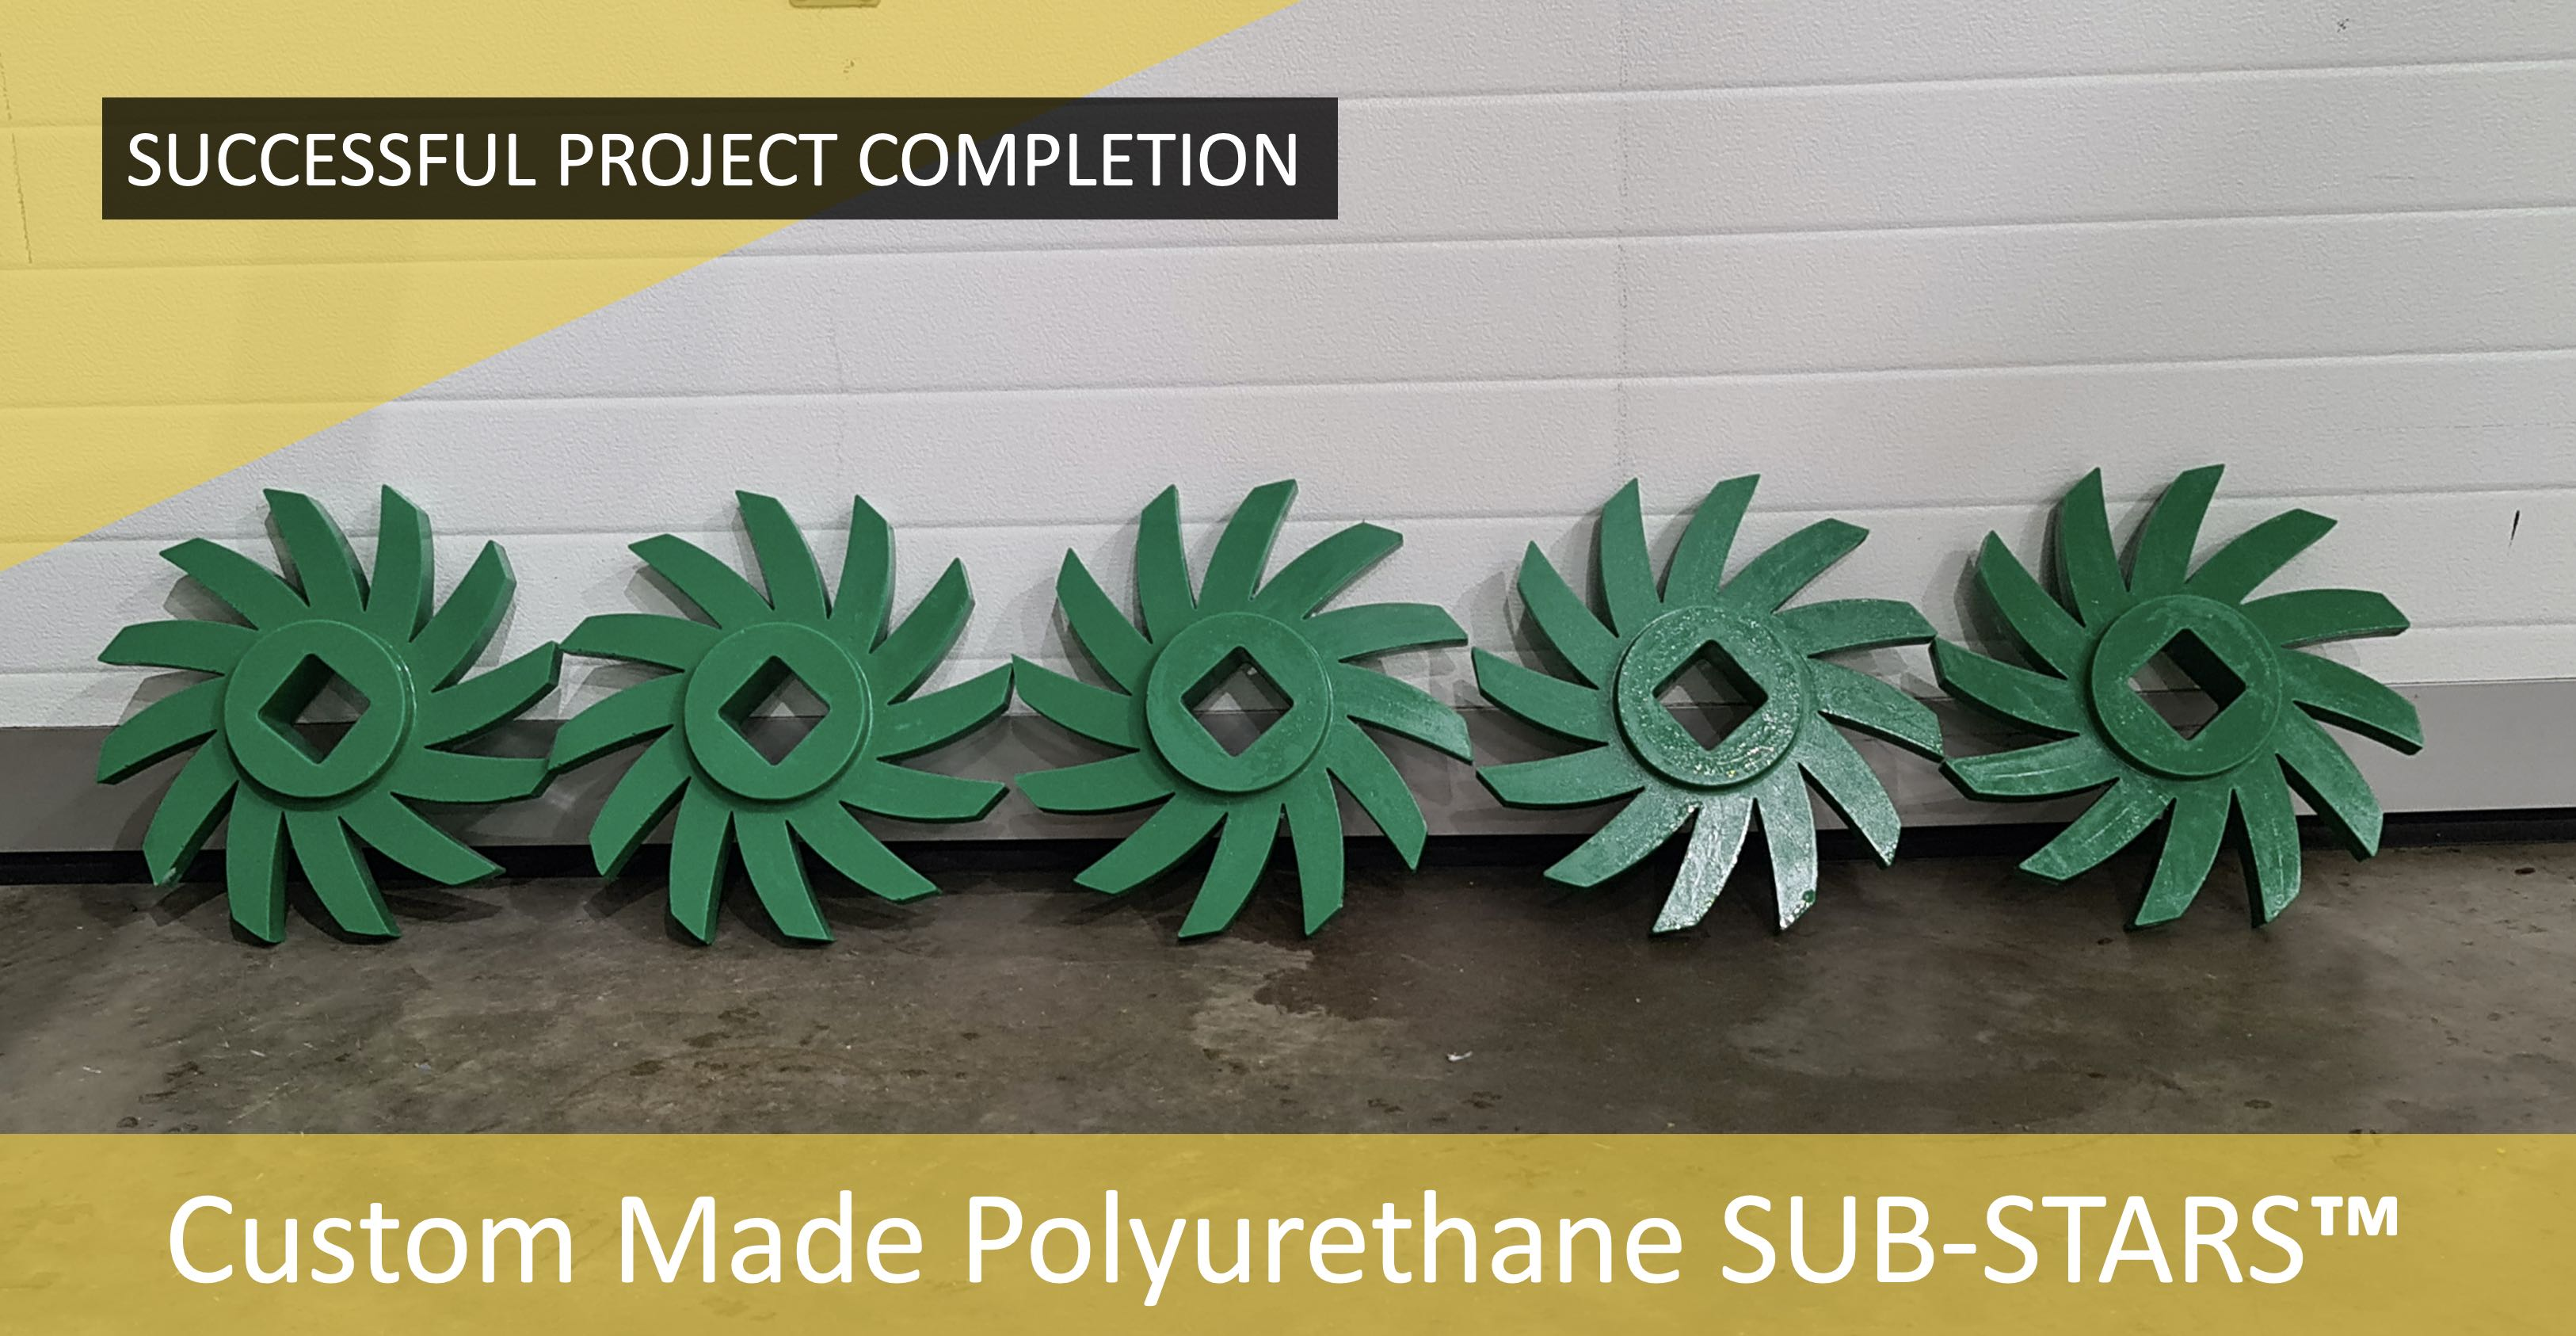 Subsea Energy Solutions (SES) complete custom Polyurethane SUB-STARS™ for large scale production machinery